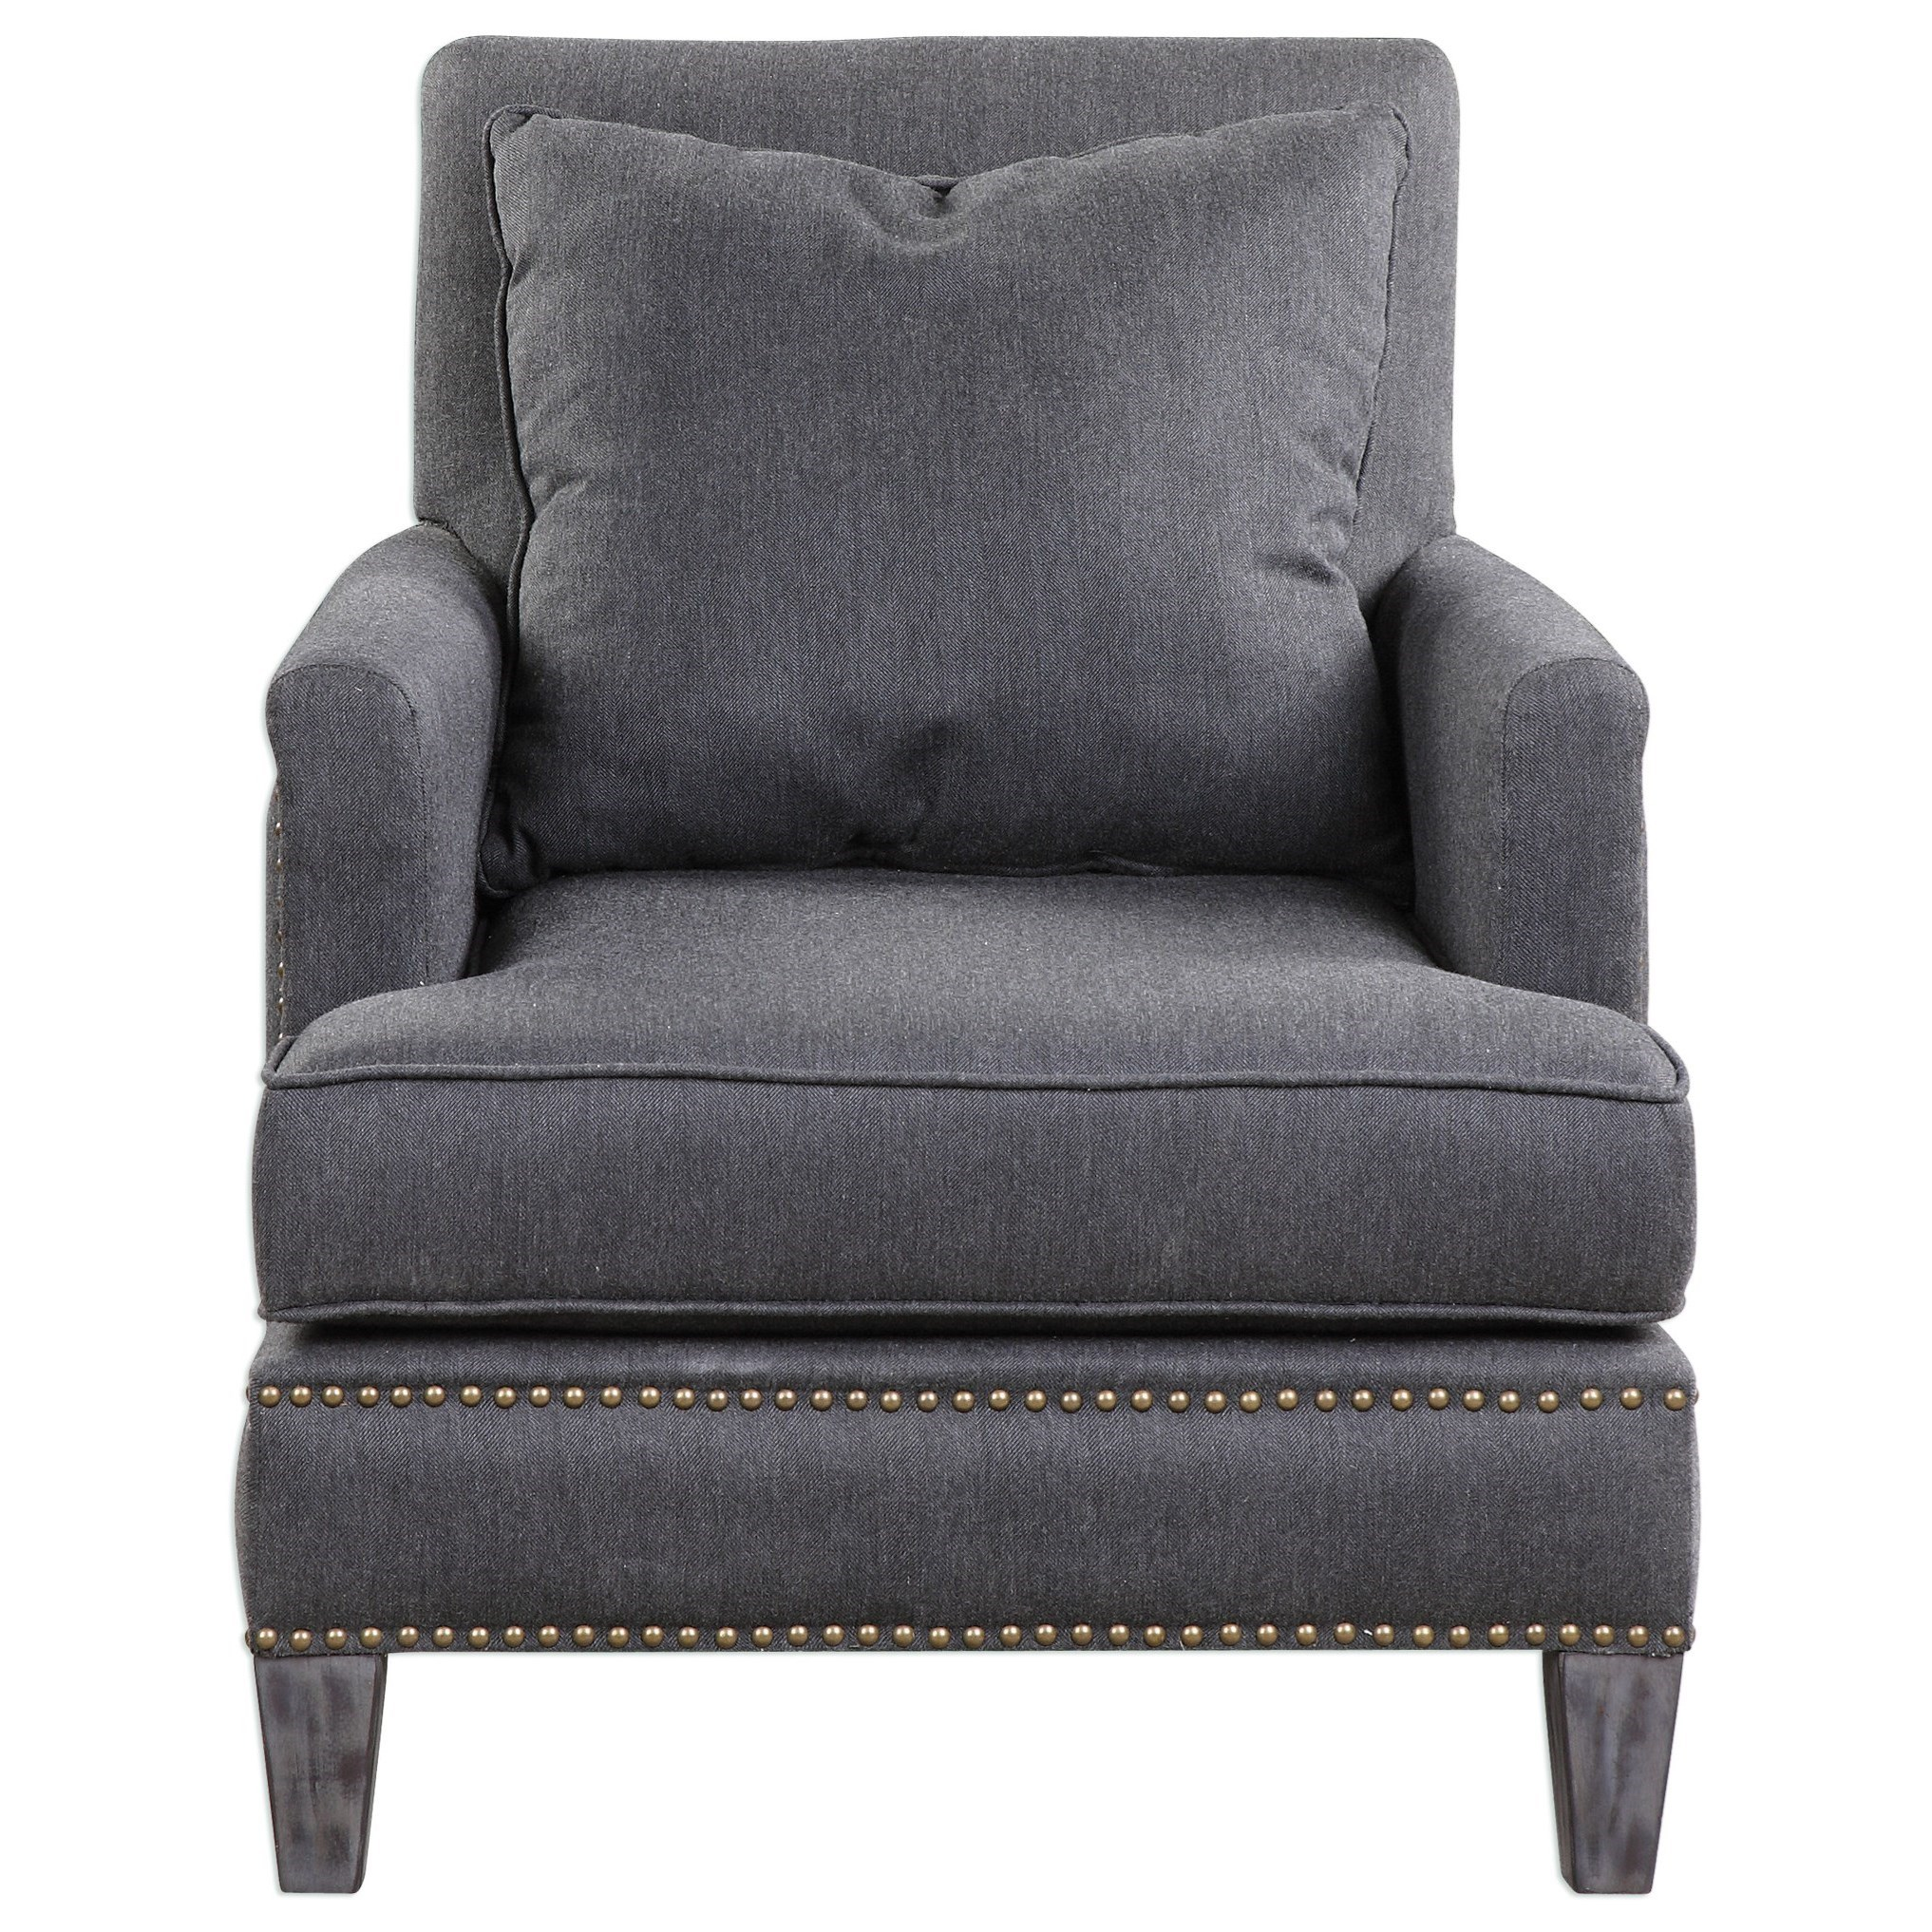 Uttermost Accent Furniture Connolly Armchair - Item Number: 23303